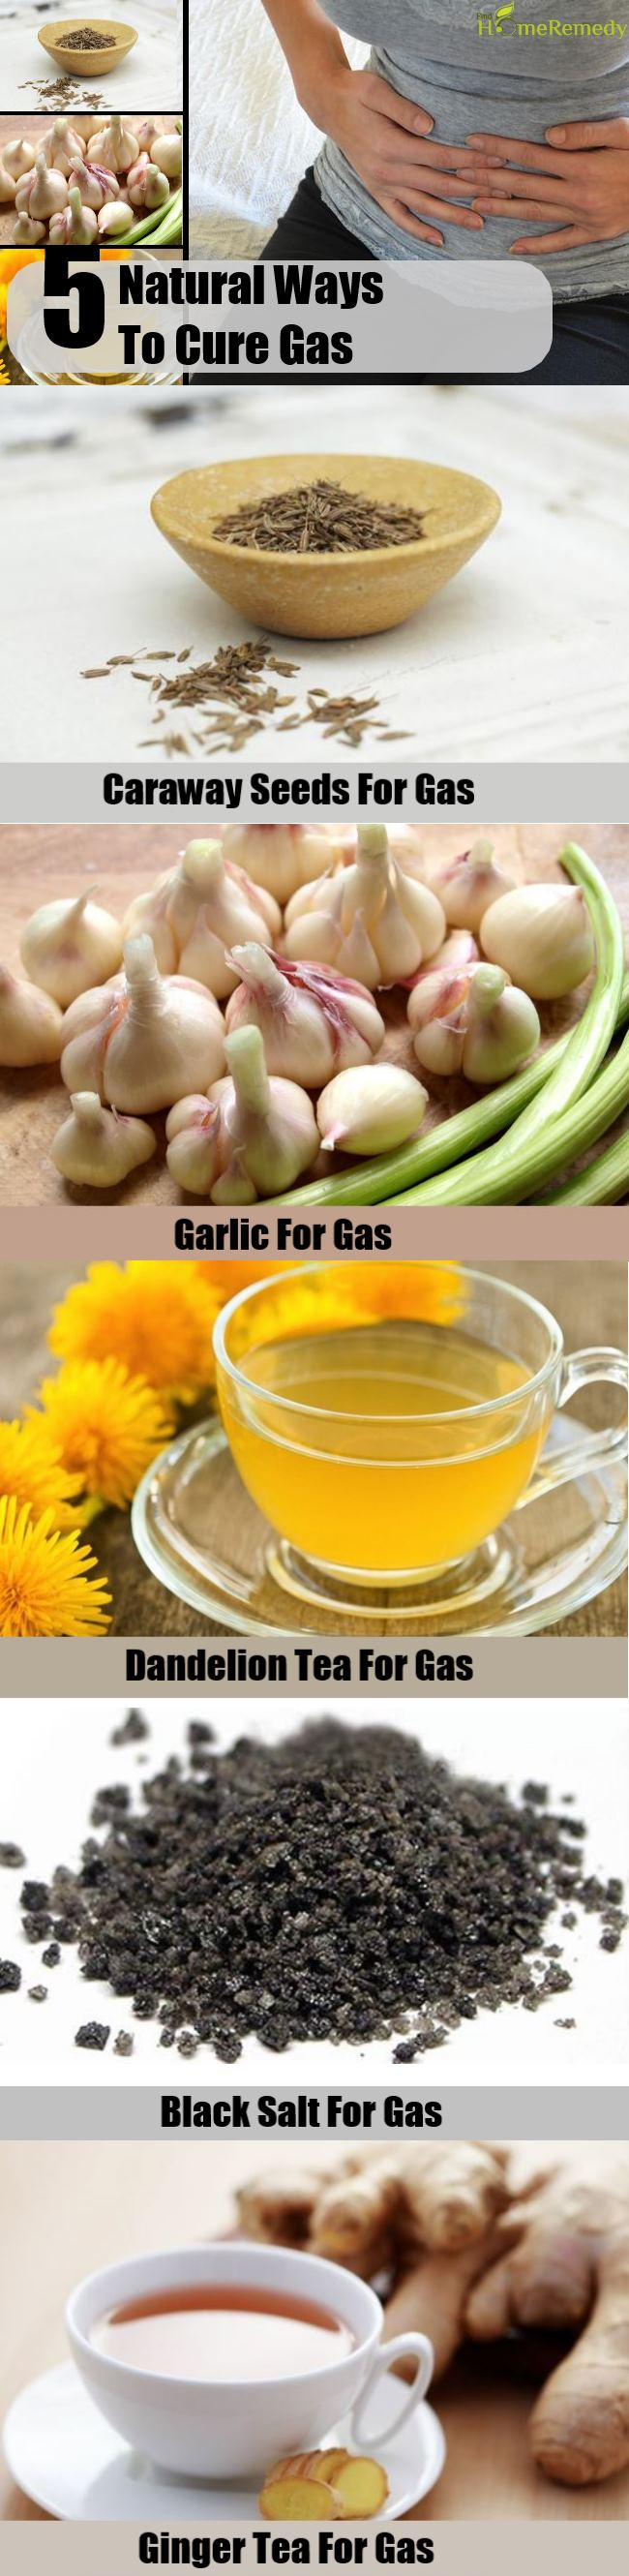 5 Natural Ways To Cure Gas